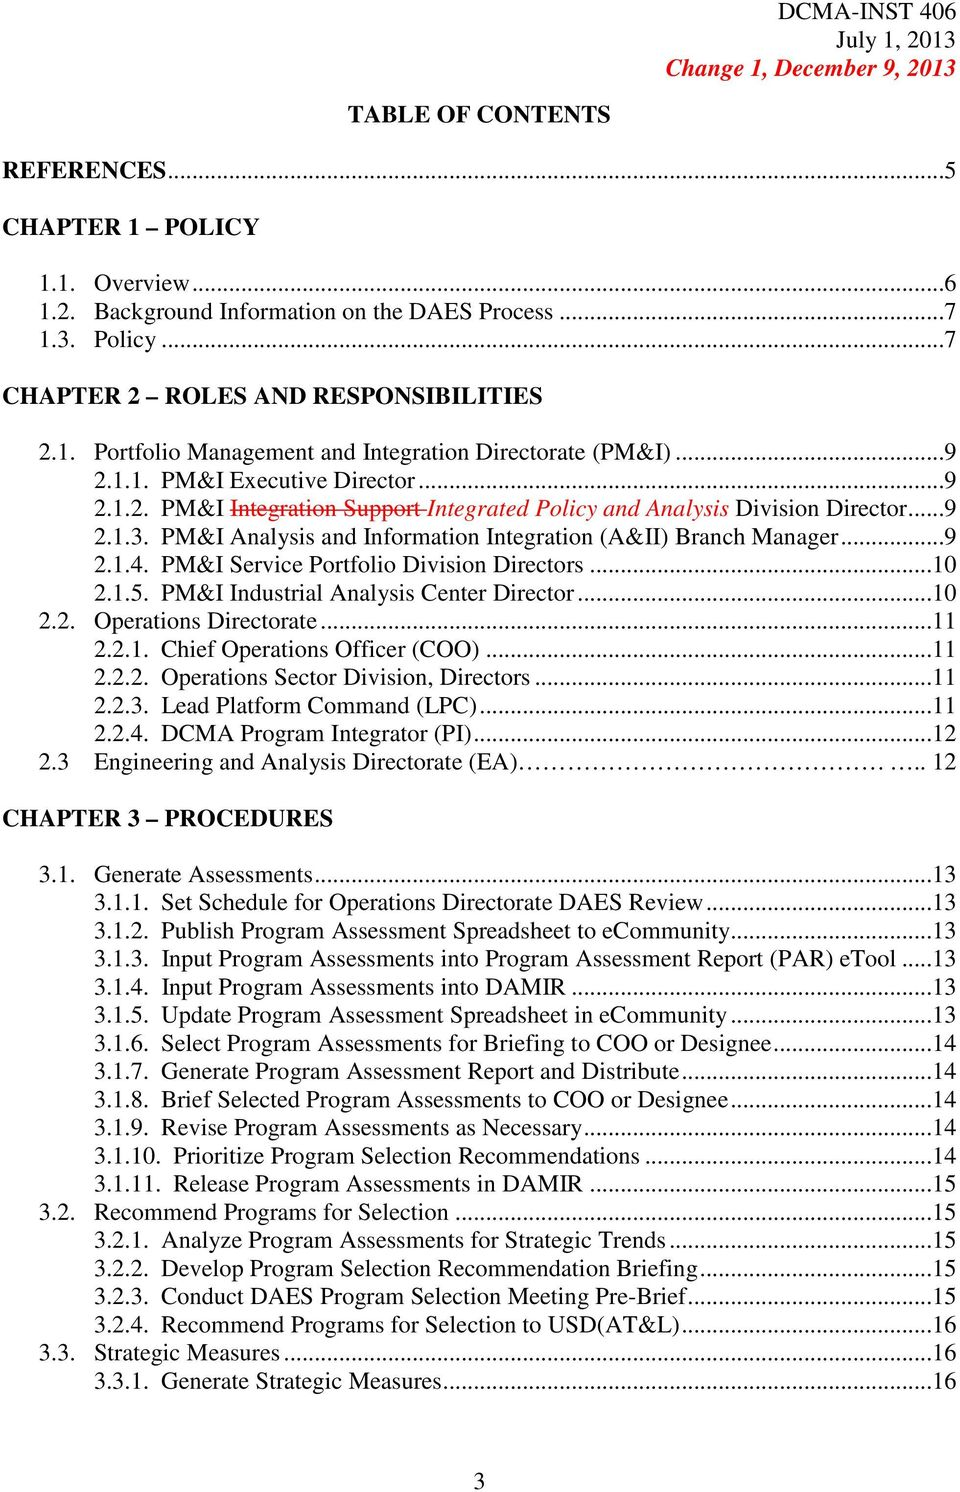 PM&I Service Portfolio Division Directors...10 2.1.5. PM&I Industrial Analysis Center Director...10 2.2. Operations Directorate...11 2.2.1. Chief Operations Officer (COO)...11 2.2.2. Operations Sector Division, Directors.